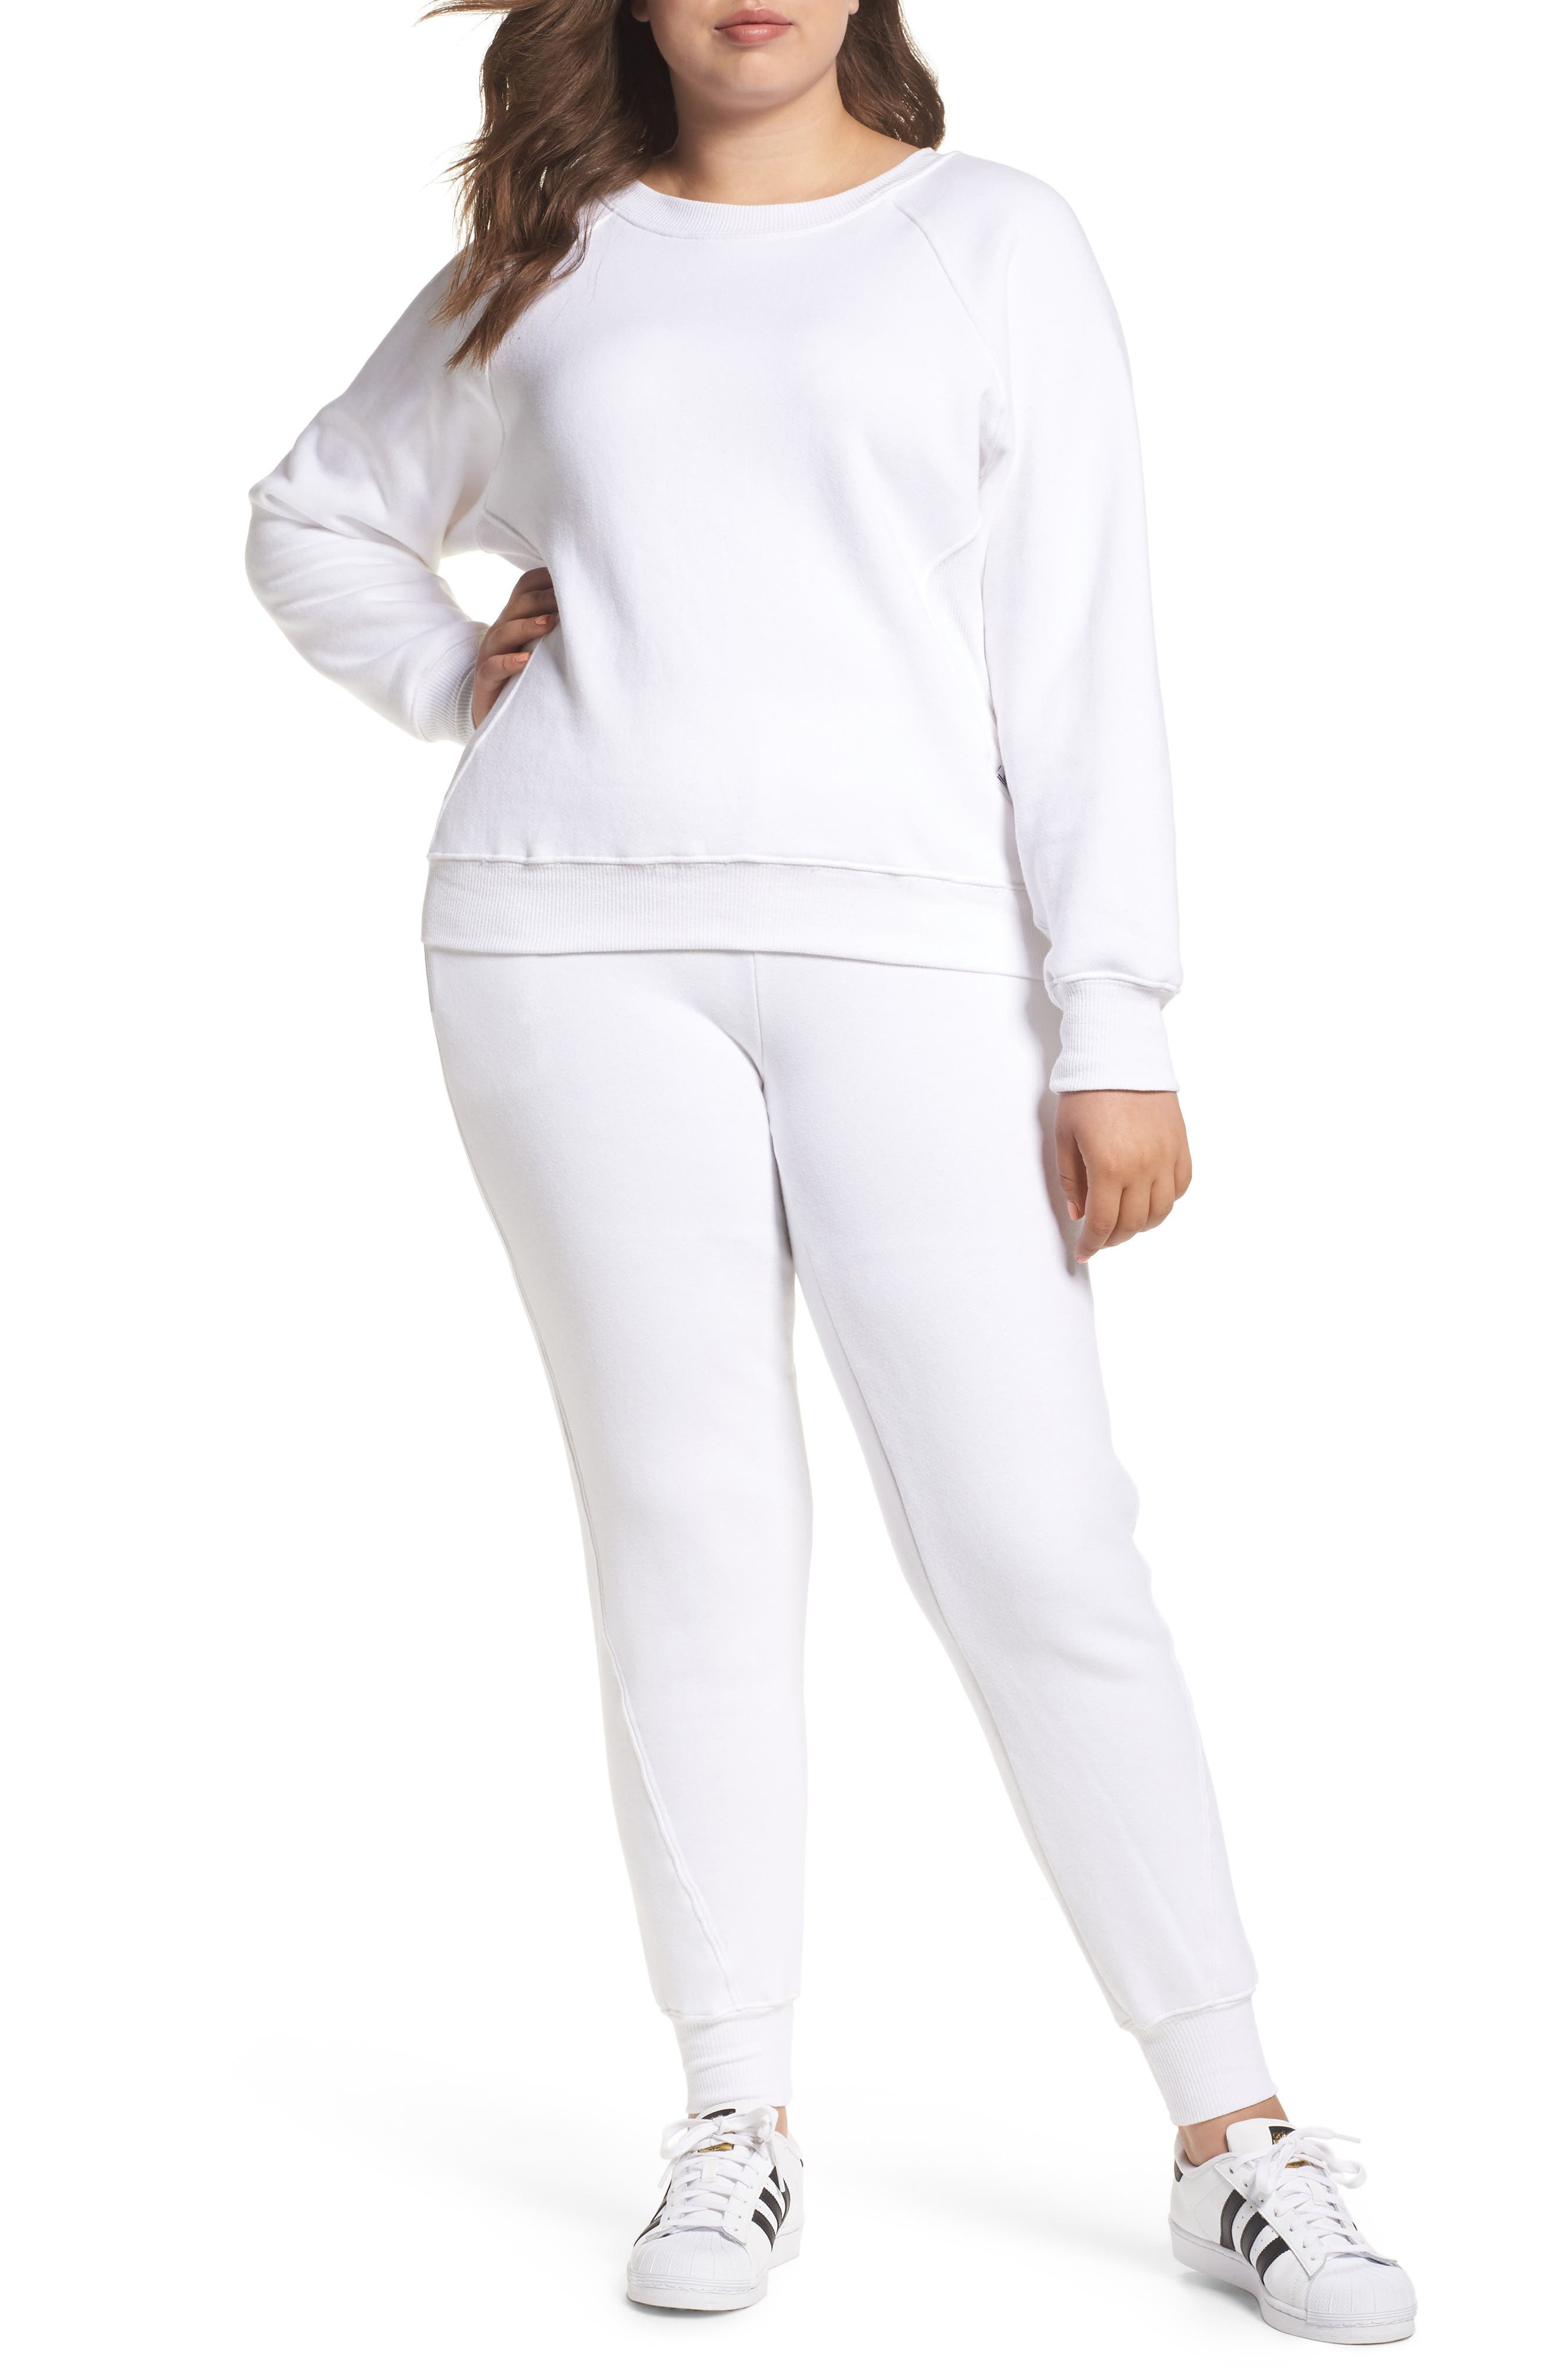 Good Sweats The Twisted Seam Pants,                             Alternate thumbnail 19, color,